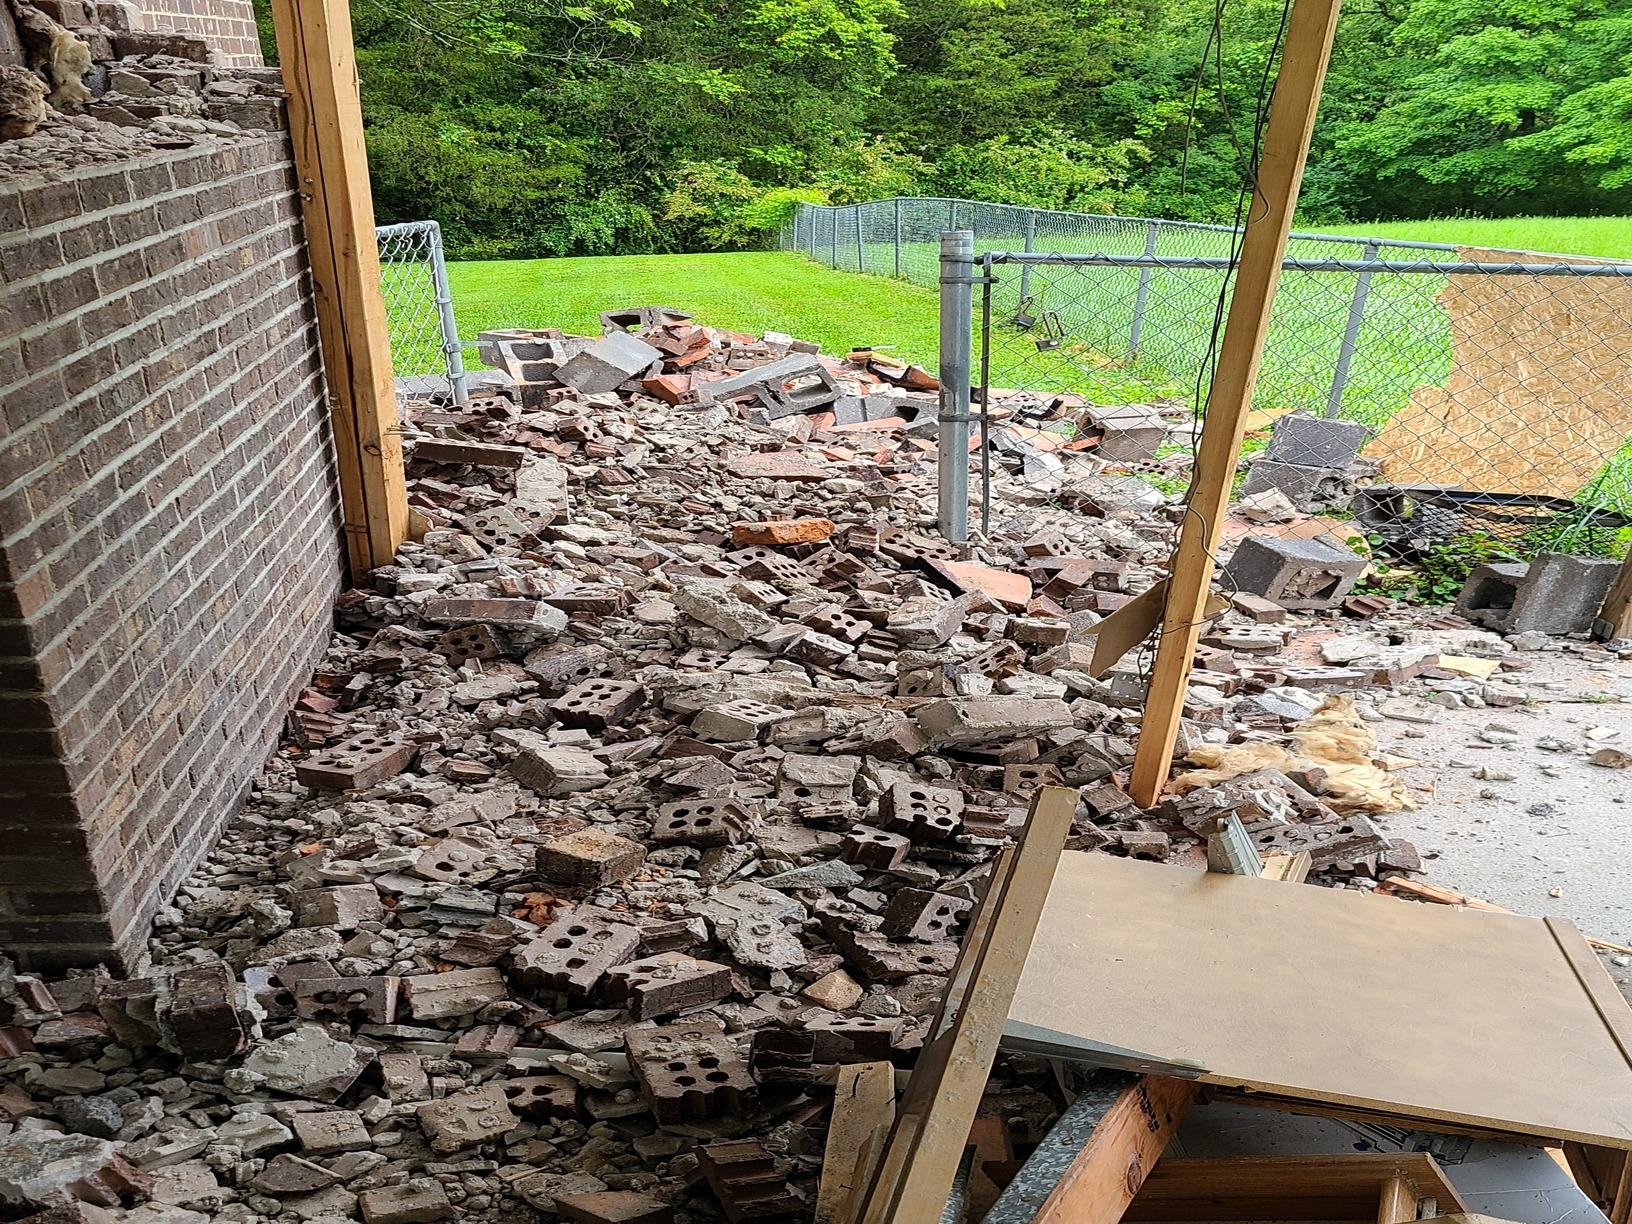 Removing Mounds of Bricks in Knoxville, TN - Before Photo